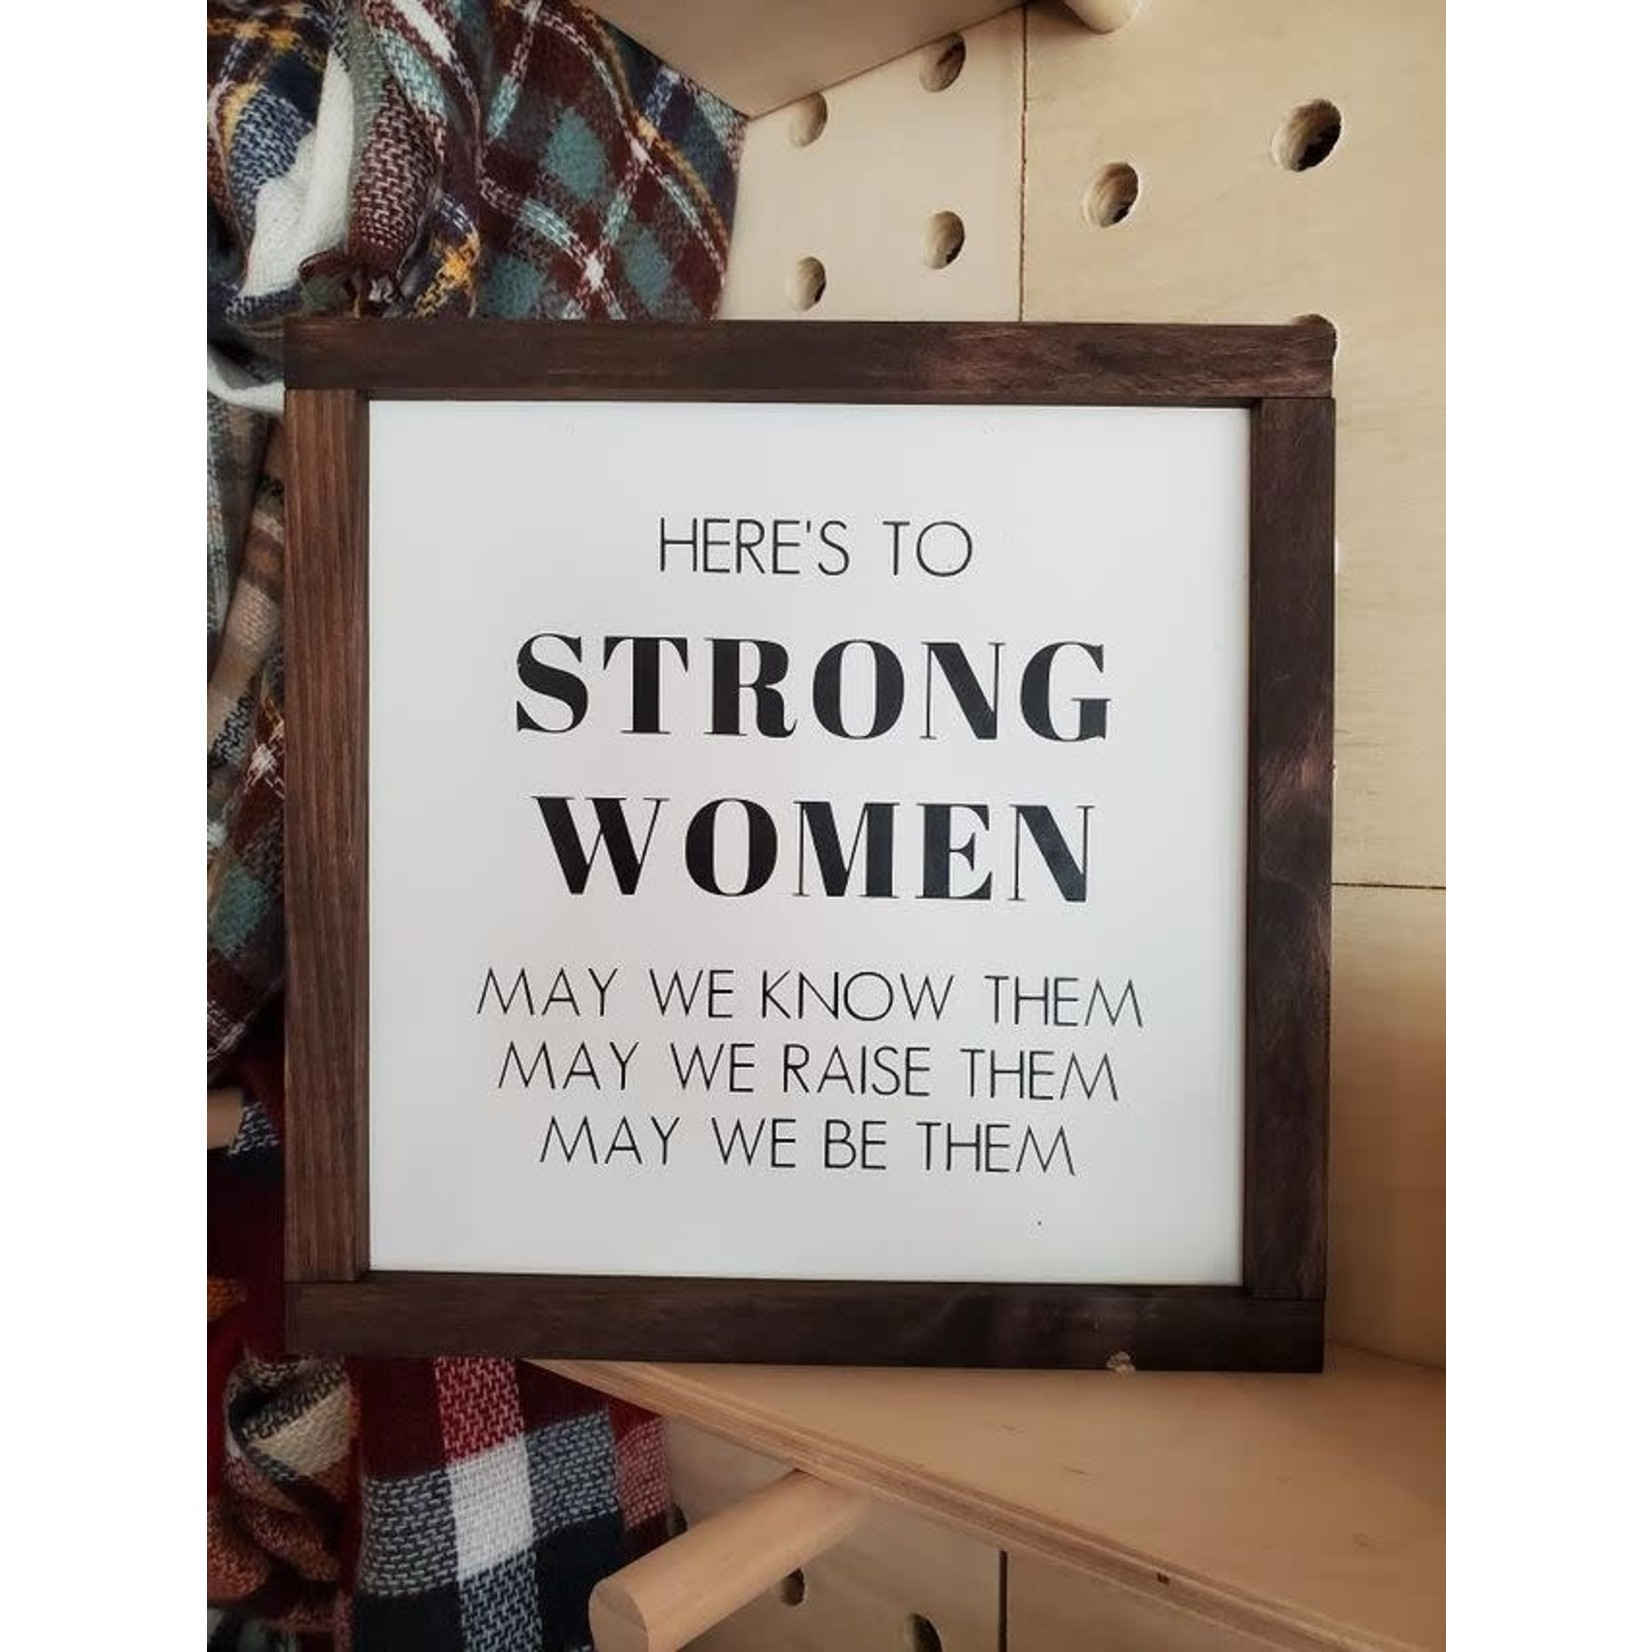 Favourite Things wood Here's to Strong Women 12x10 framed sign